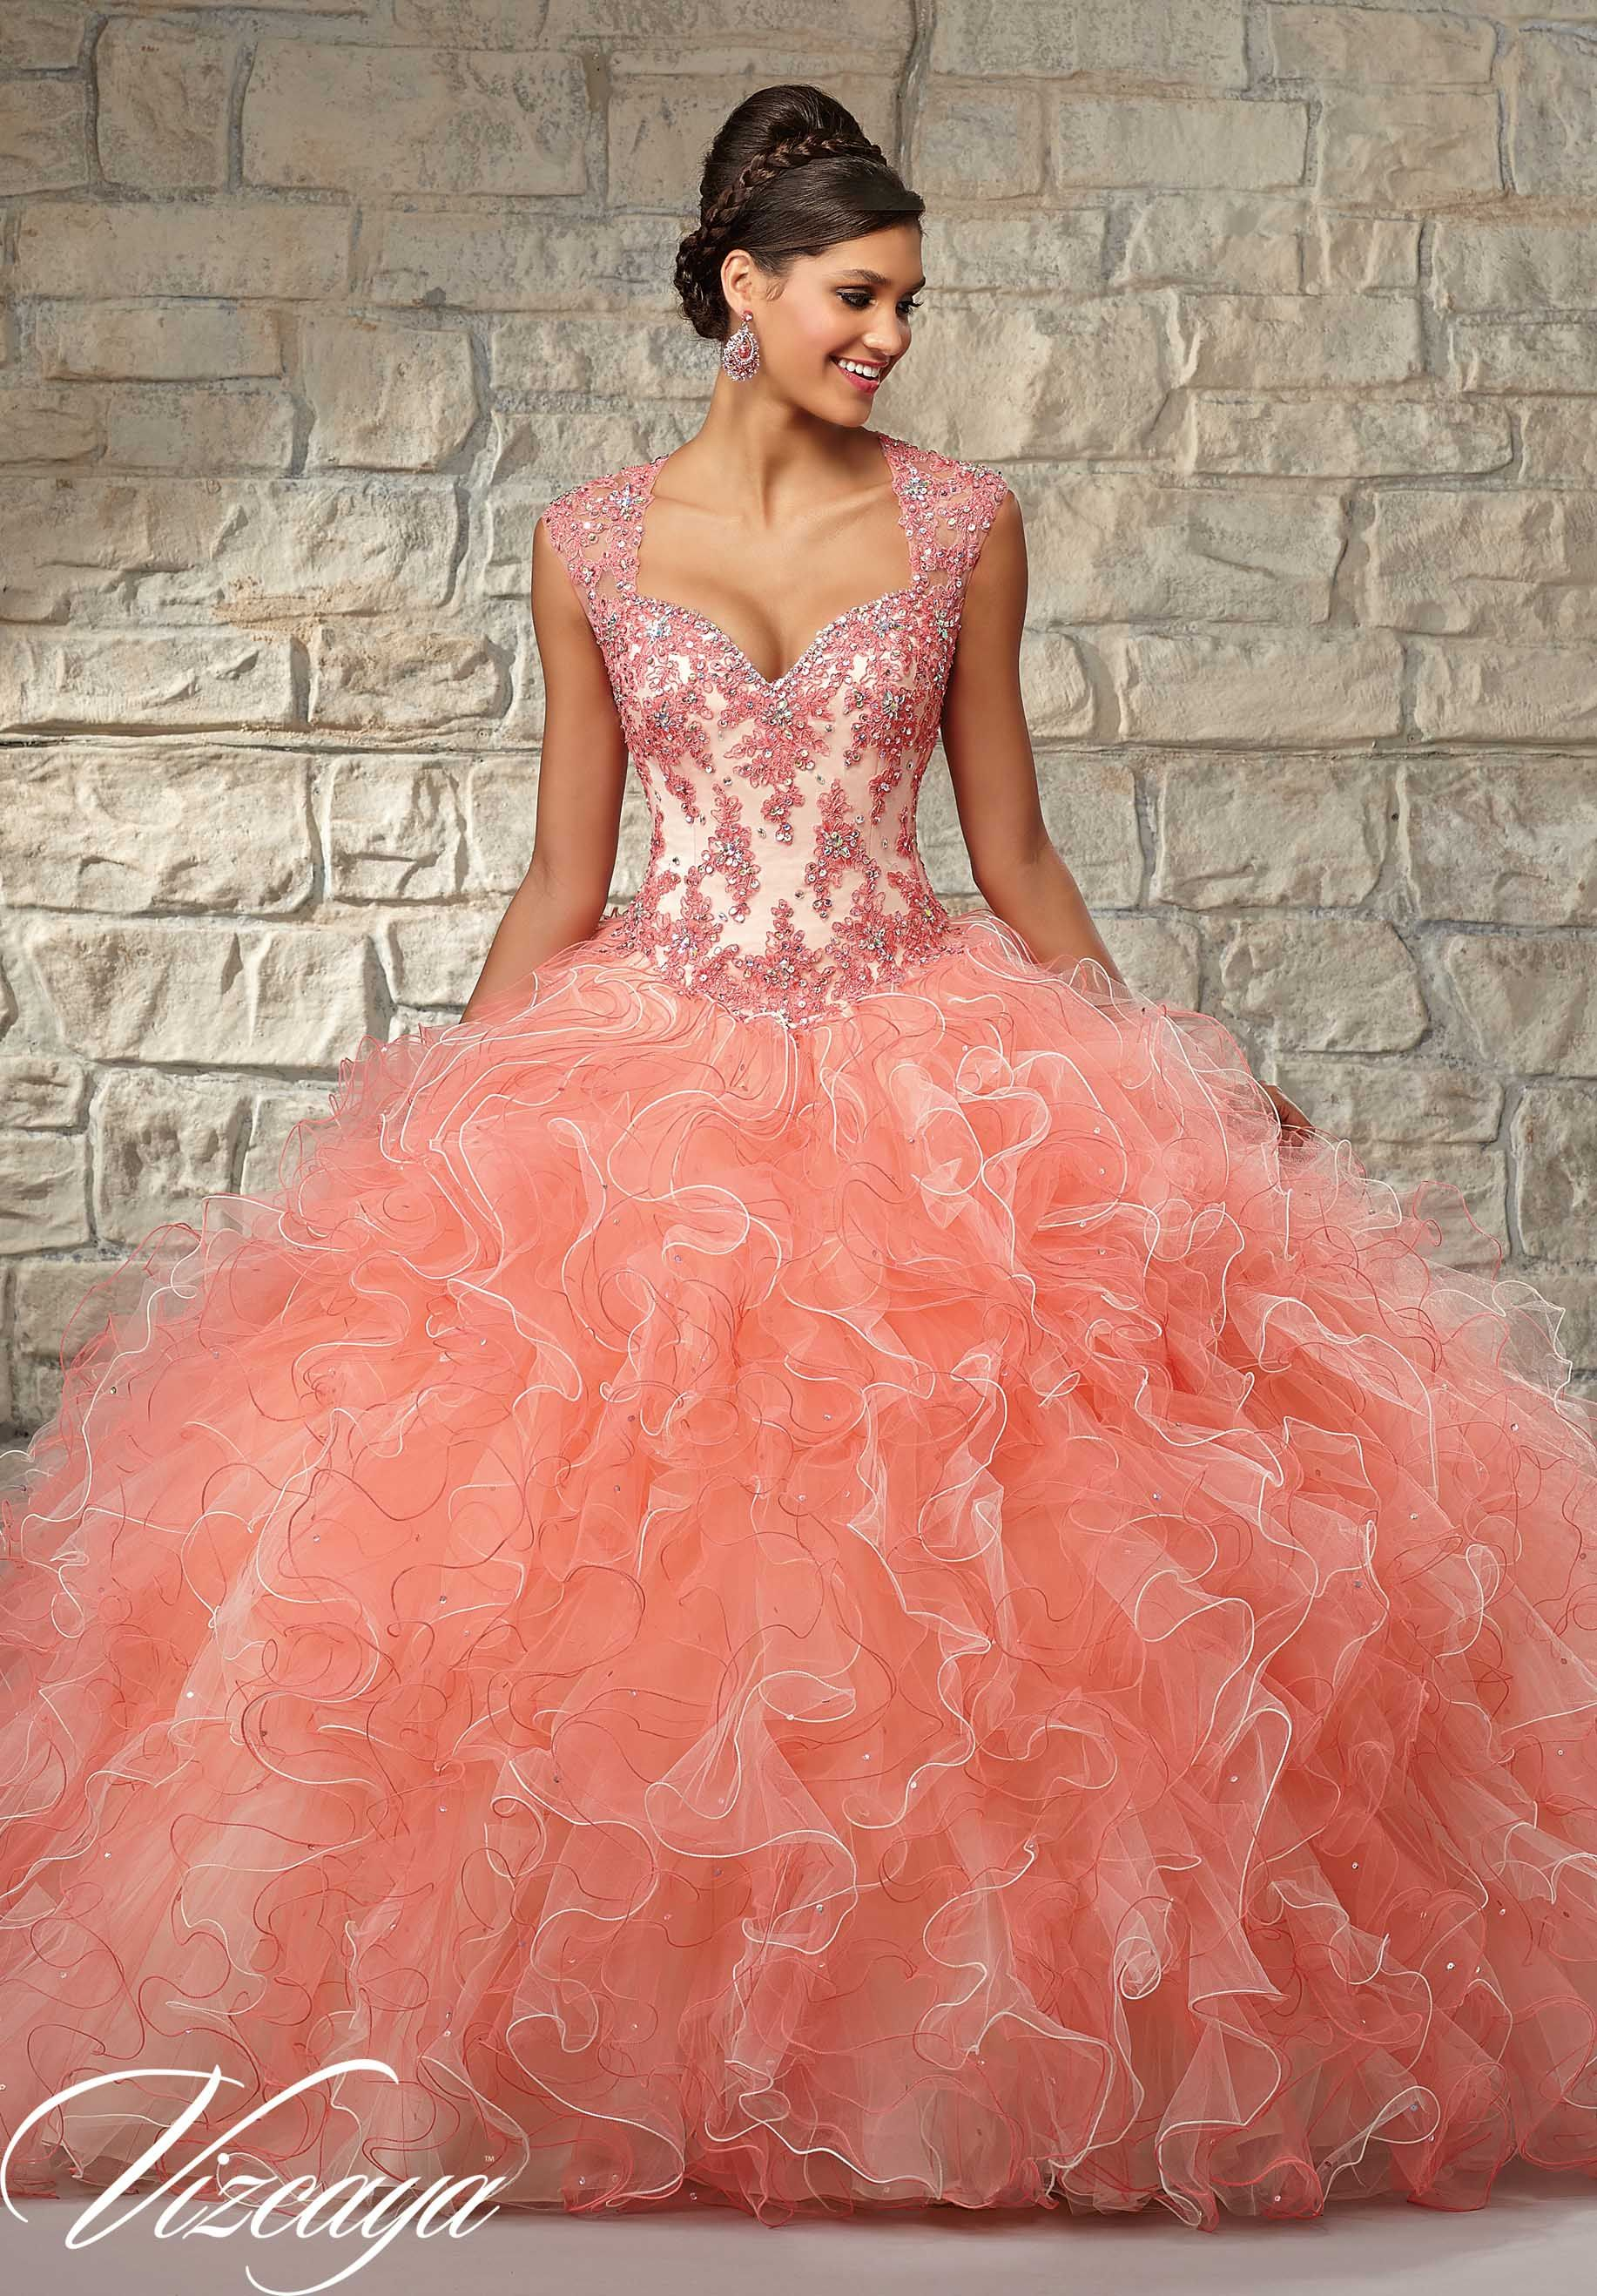 8a1591f5024 89029 Quinceanera Gowns Contrasting Lace Appliques on Ruffled Tulle with  Beading.